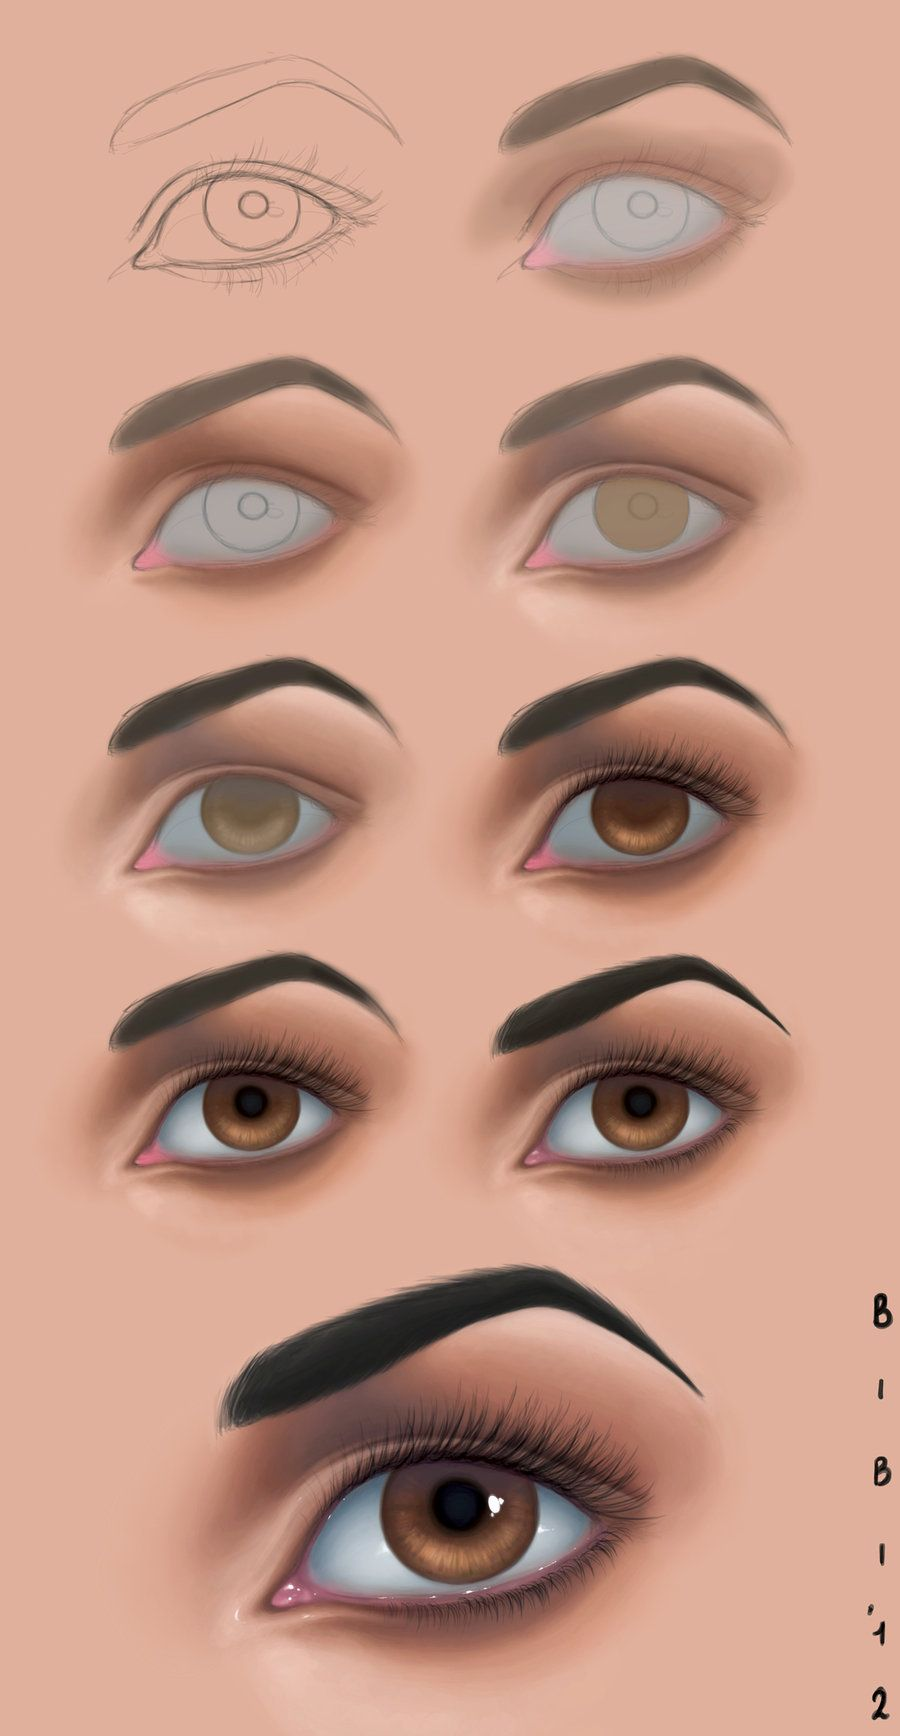 Tutorial photoshop n2 eye by elybibi learn pinterest tutorial photoshop n2 eye by elybibi digital painting baditri Image collections